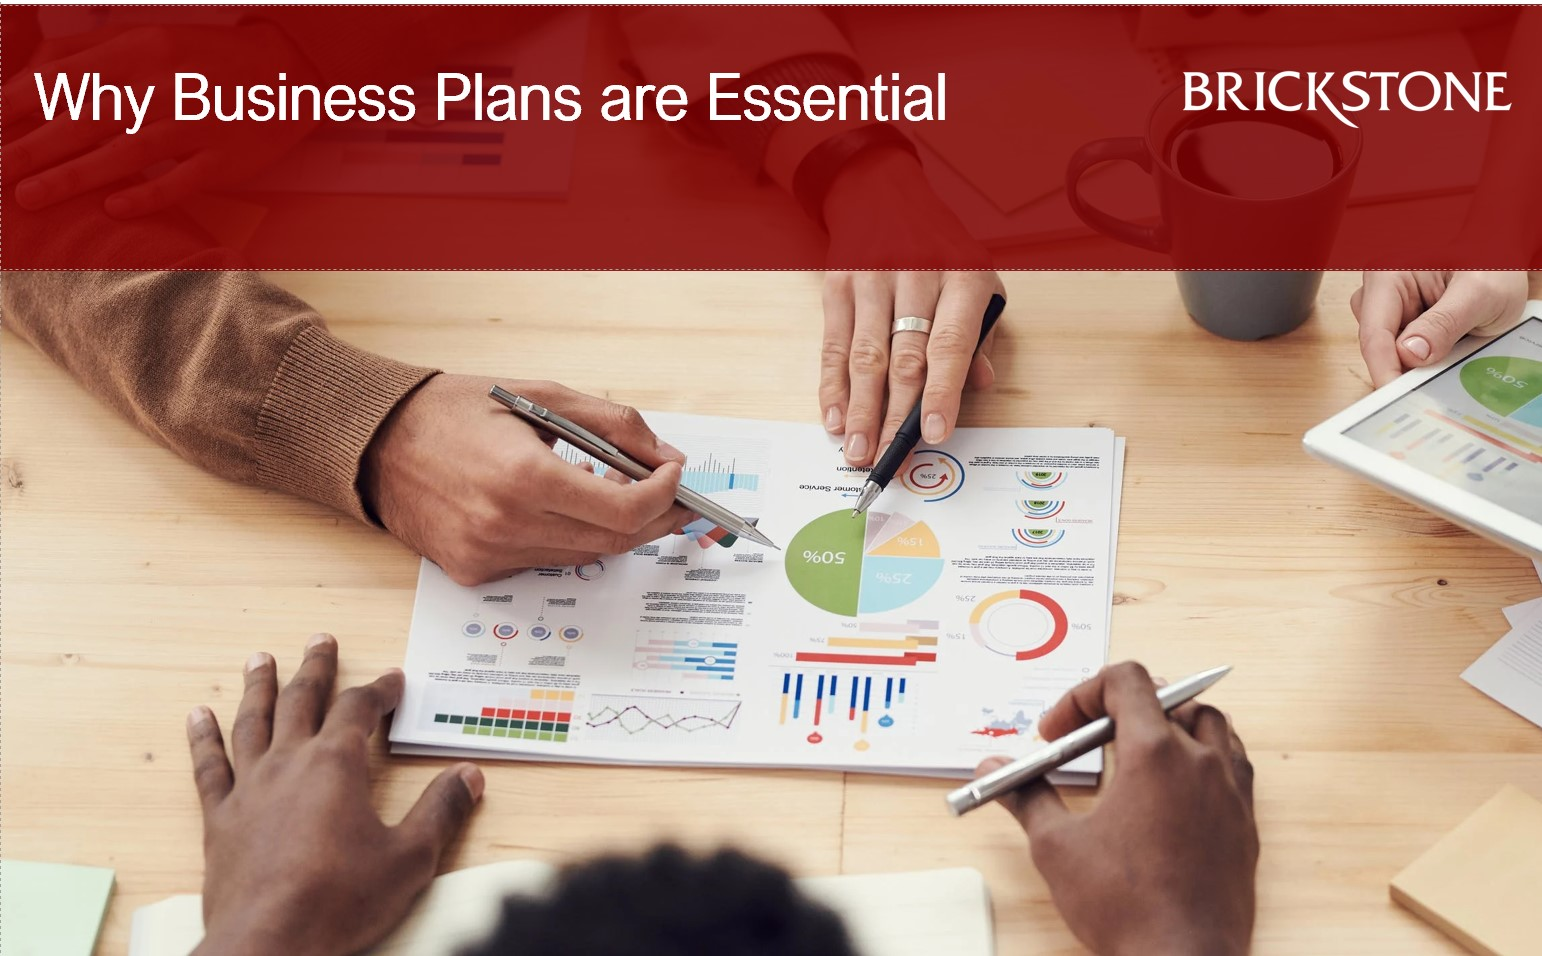 Why business plans are essential_Brickstone Africa